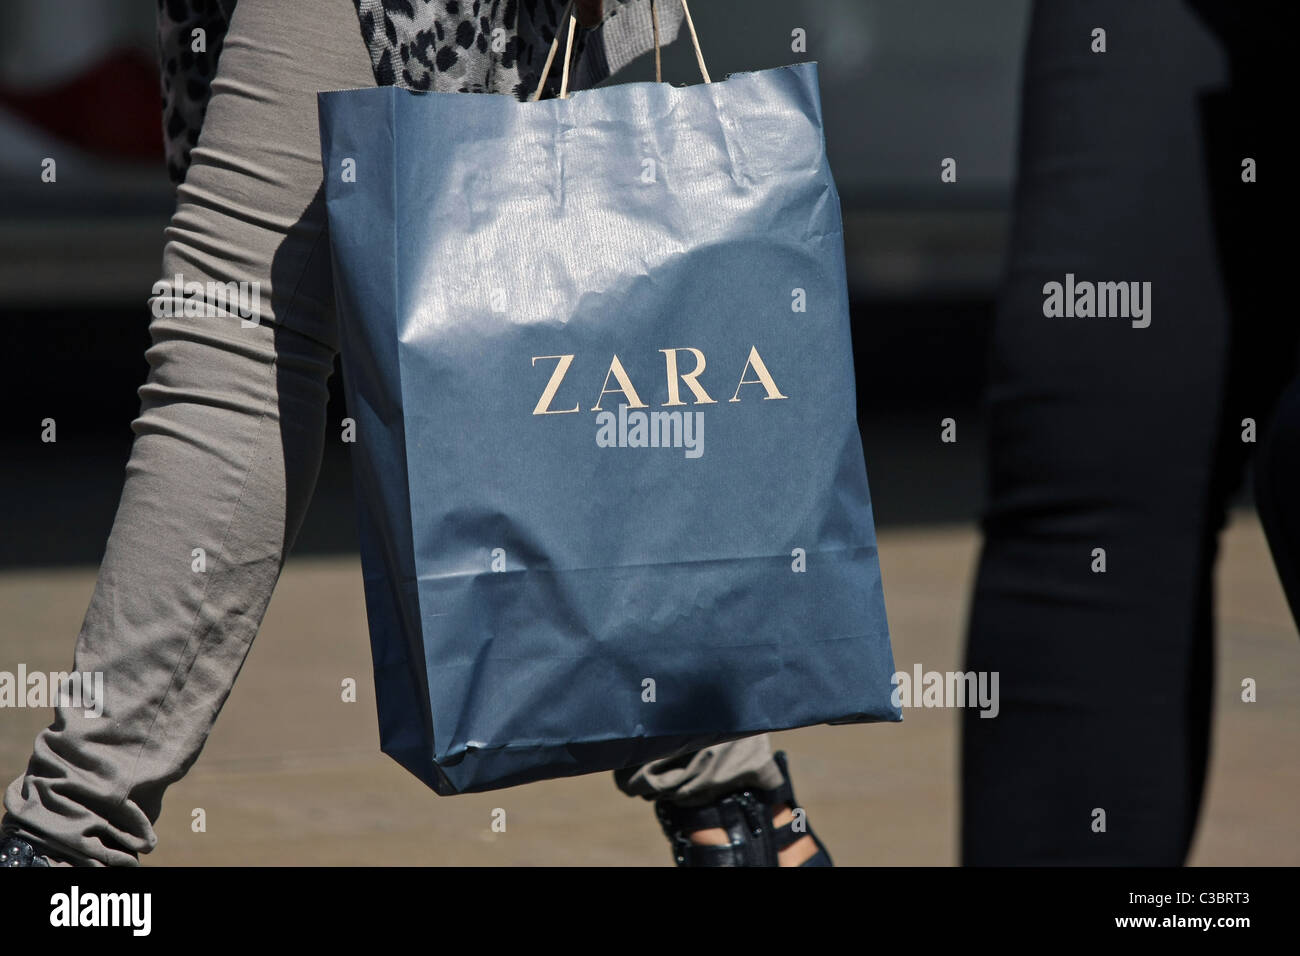 022e6c71 Part of a person carrying a Zara shopping bag in Oxford Street, London,  England